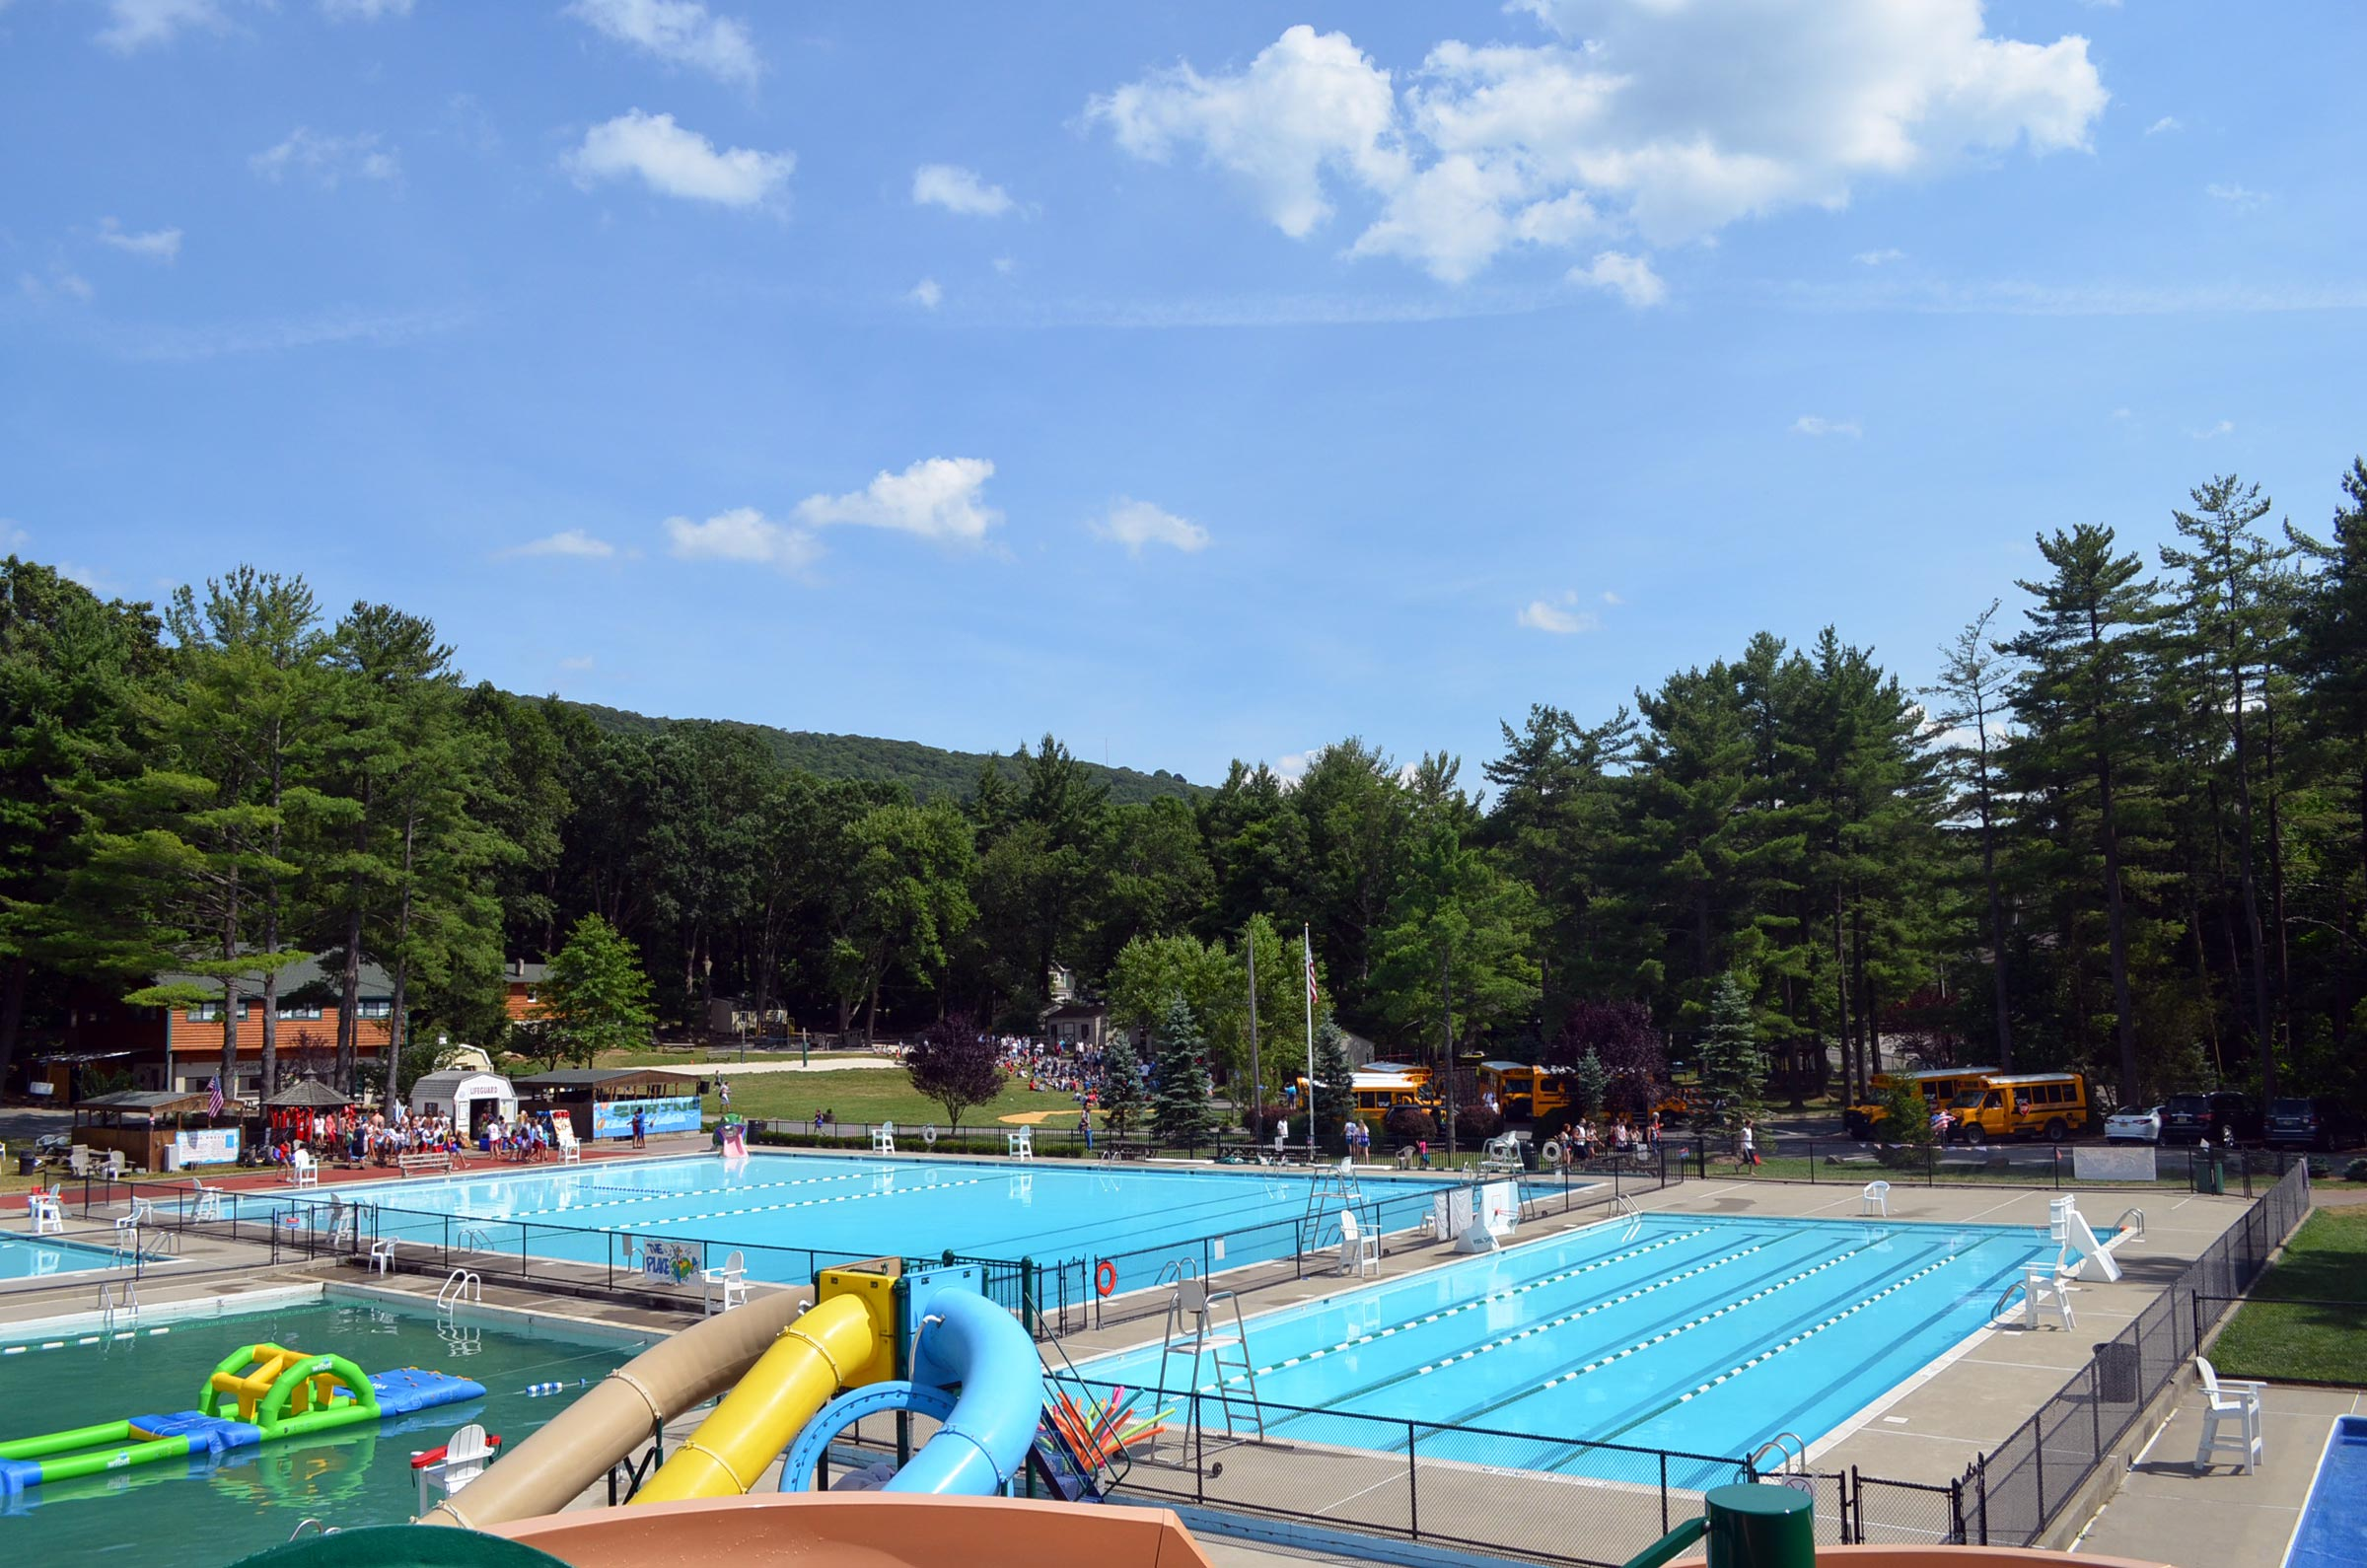 Summer Day Camp Pools in Bergen County, NJ